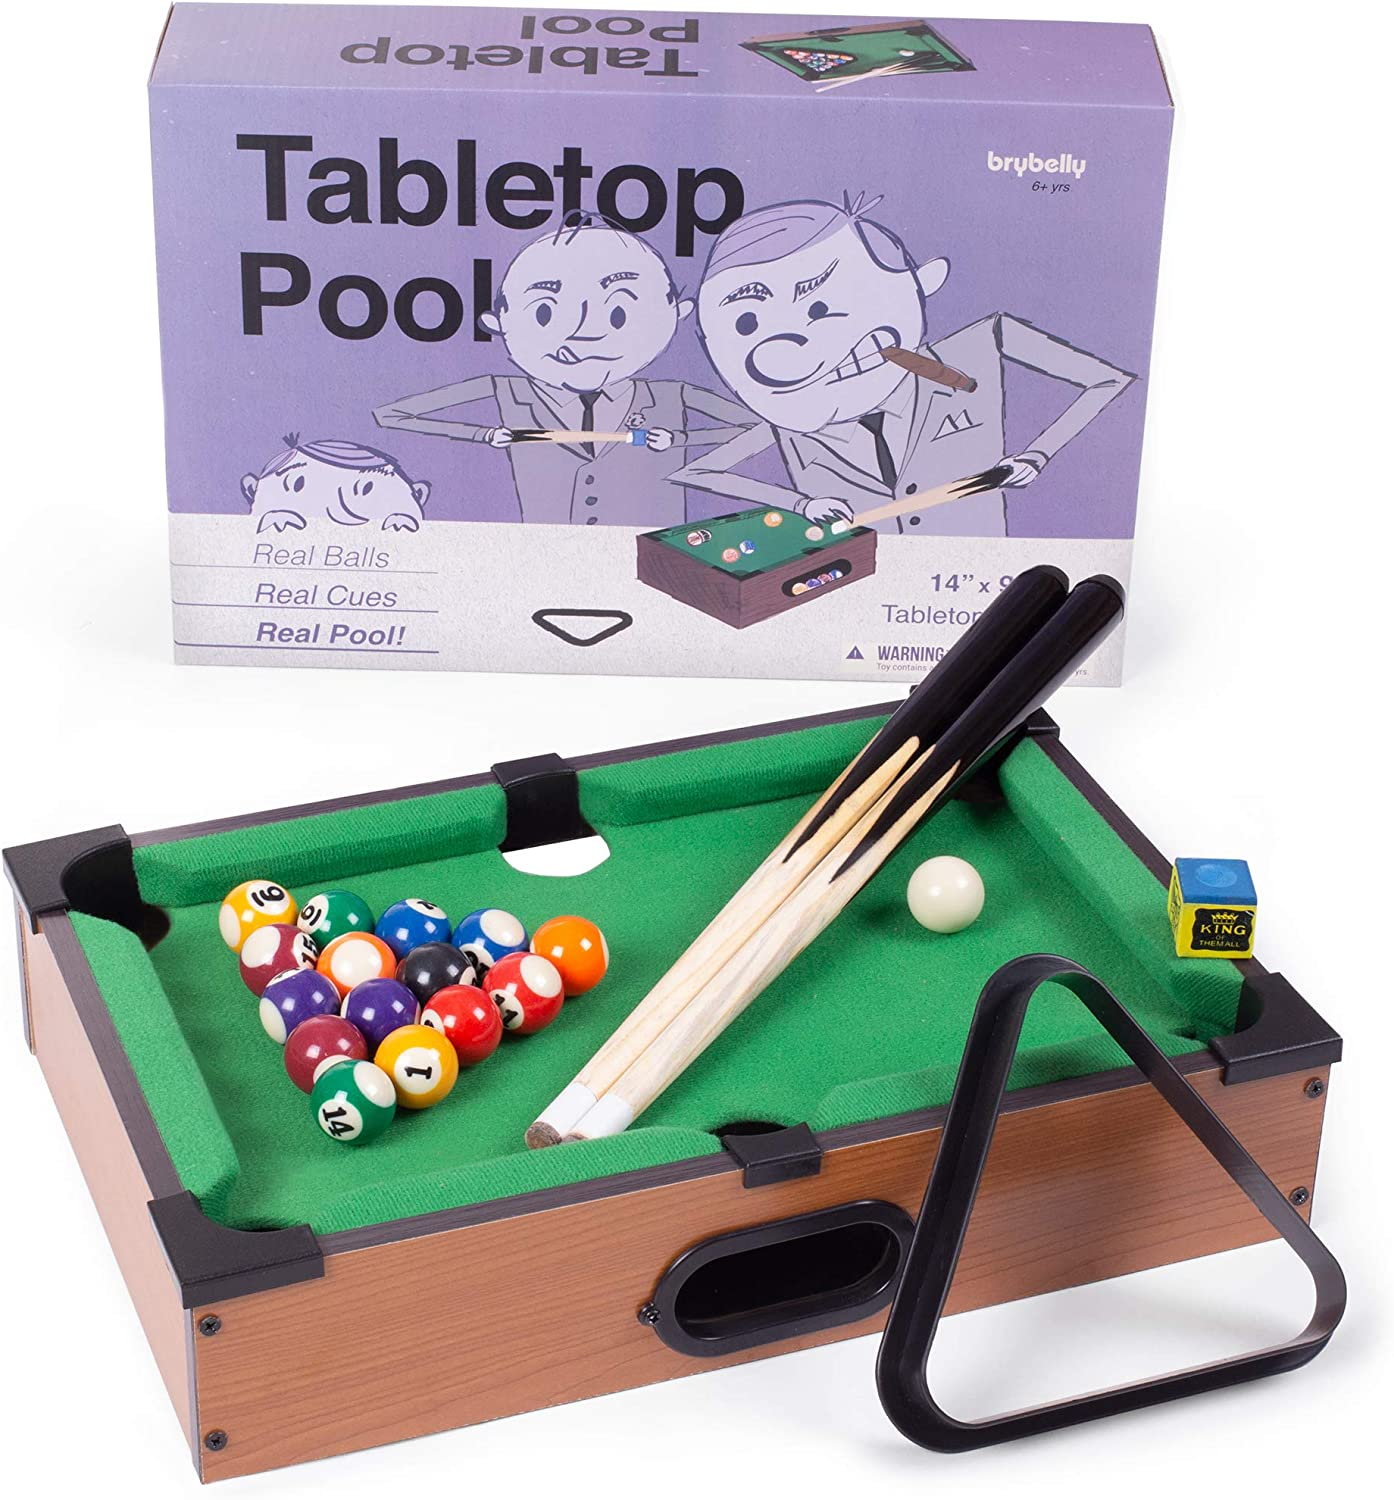 Tabletop Pool, Mini Pool Table & Billiard Set | Small Billiards Game with 16 Resin Balls, 2 Pool Cues, Triangle Rack, & Chalk | Travel-Friendly & Office Desk Games, Bartop, or Home Use & Easy Storage